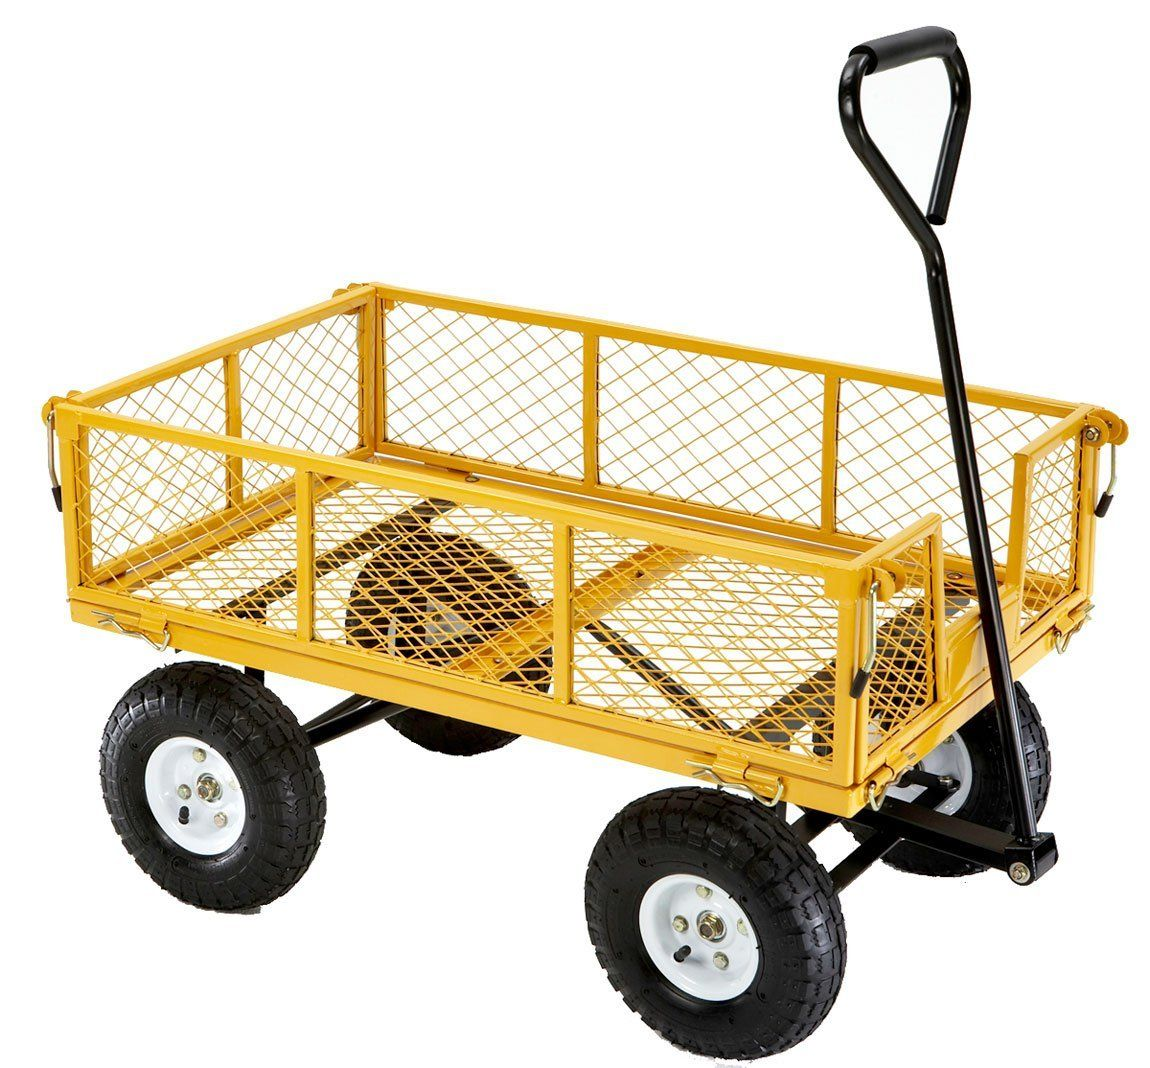 Amazon Com Farm Ranch Fr1245 2 Steel Utility Cart With Removable Folding Sides And 10 Inch Pneumatic Tires 900 Pound Capacity 34 Inches By 21 With Images